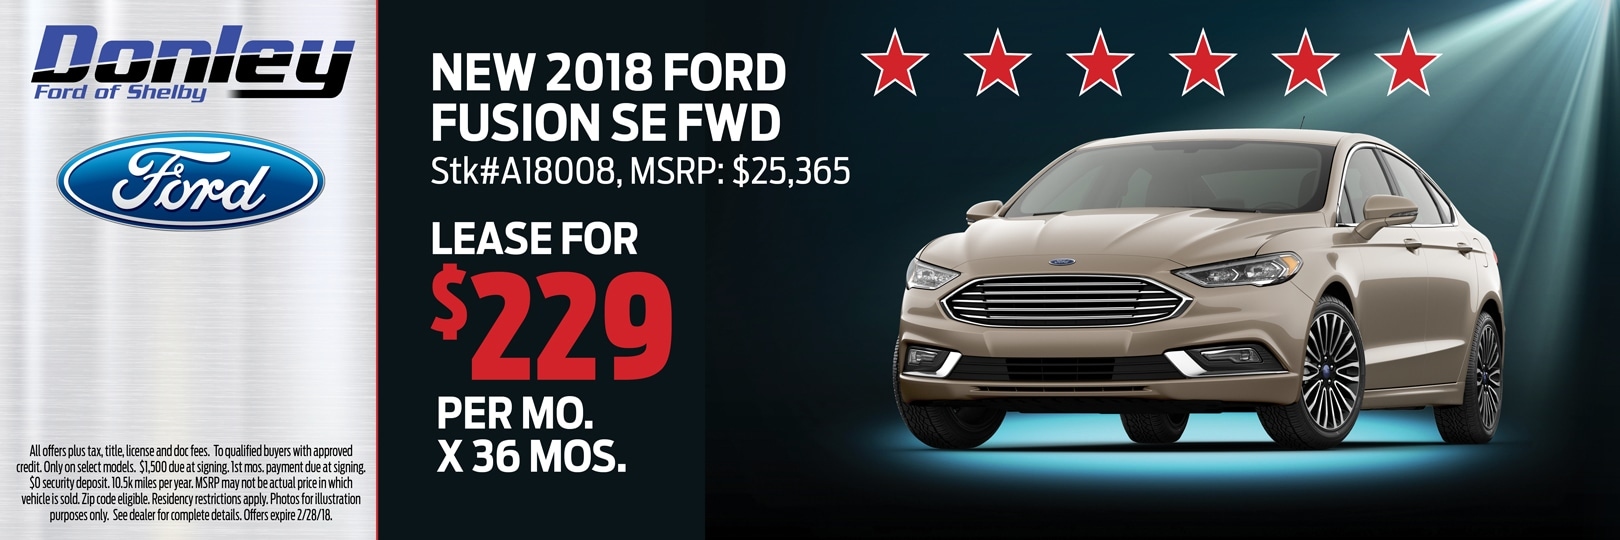 Ford Fusion Special Offer